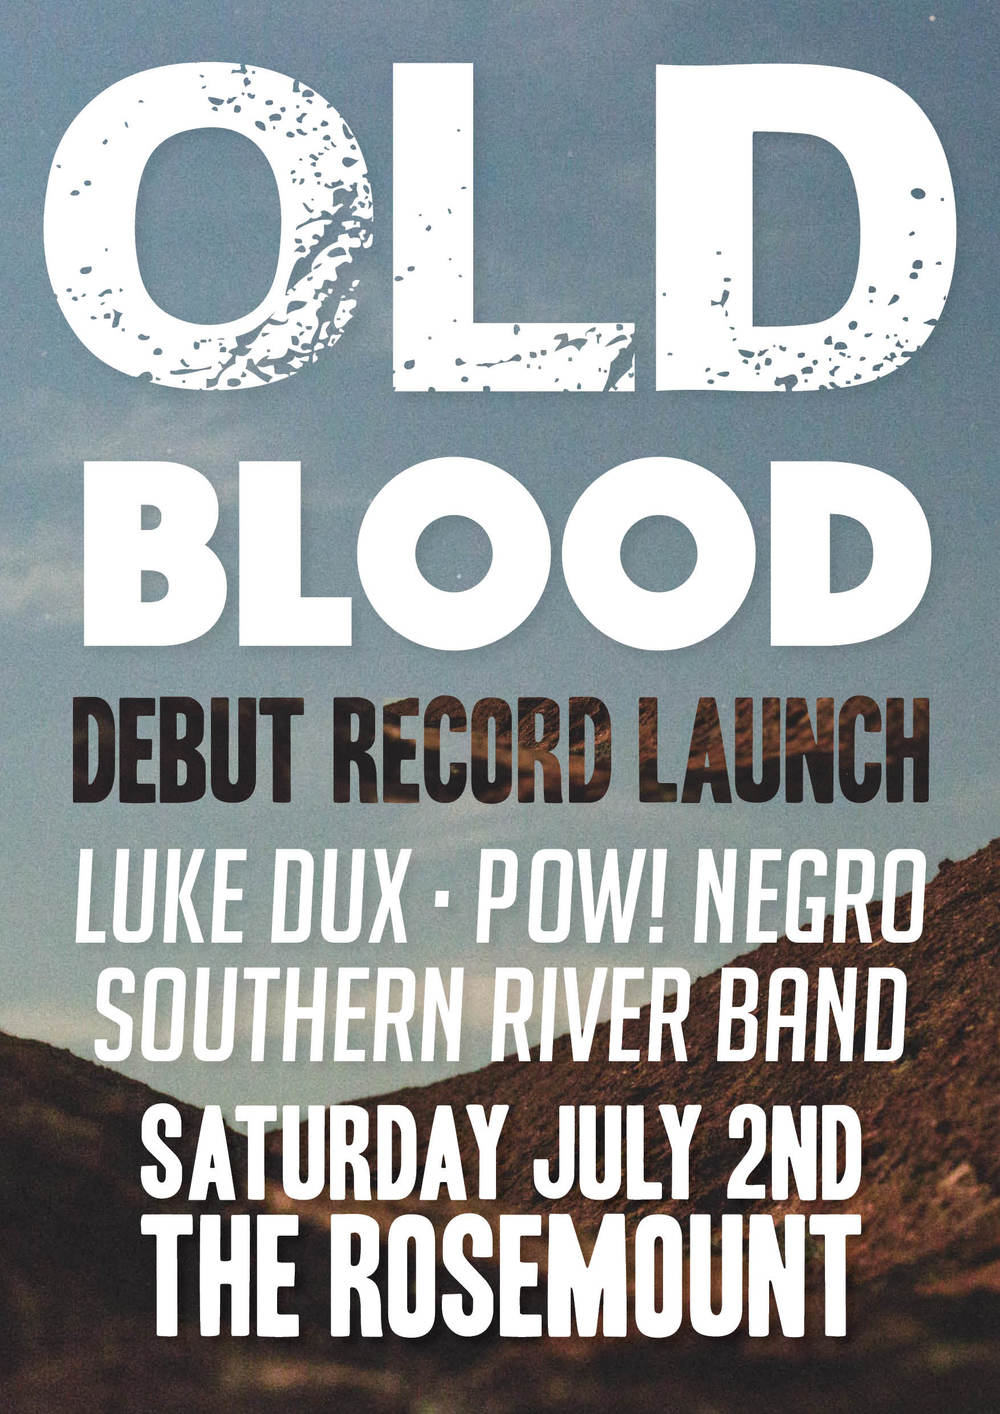 OLD BLOOD + DEBUT RECORD RELEASE + POW NEGRO + SOUTHERN RIVER BAND + LUKE DUX